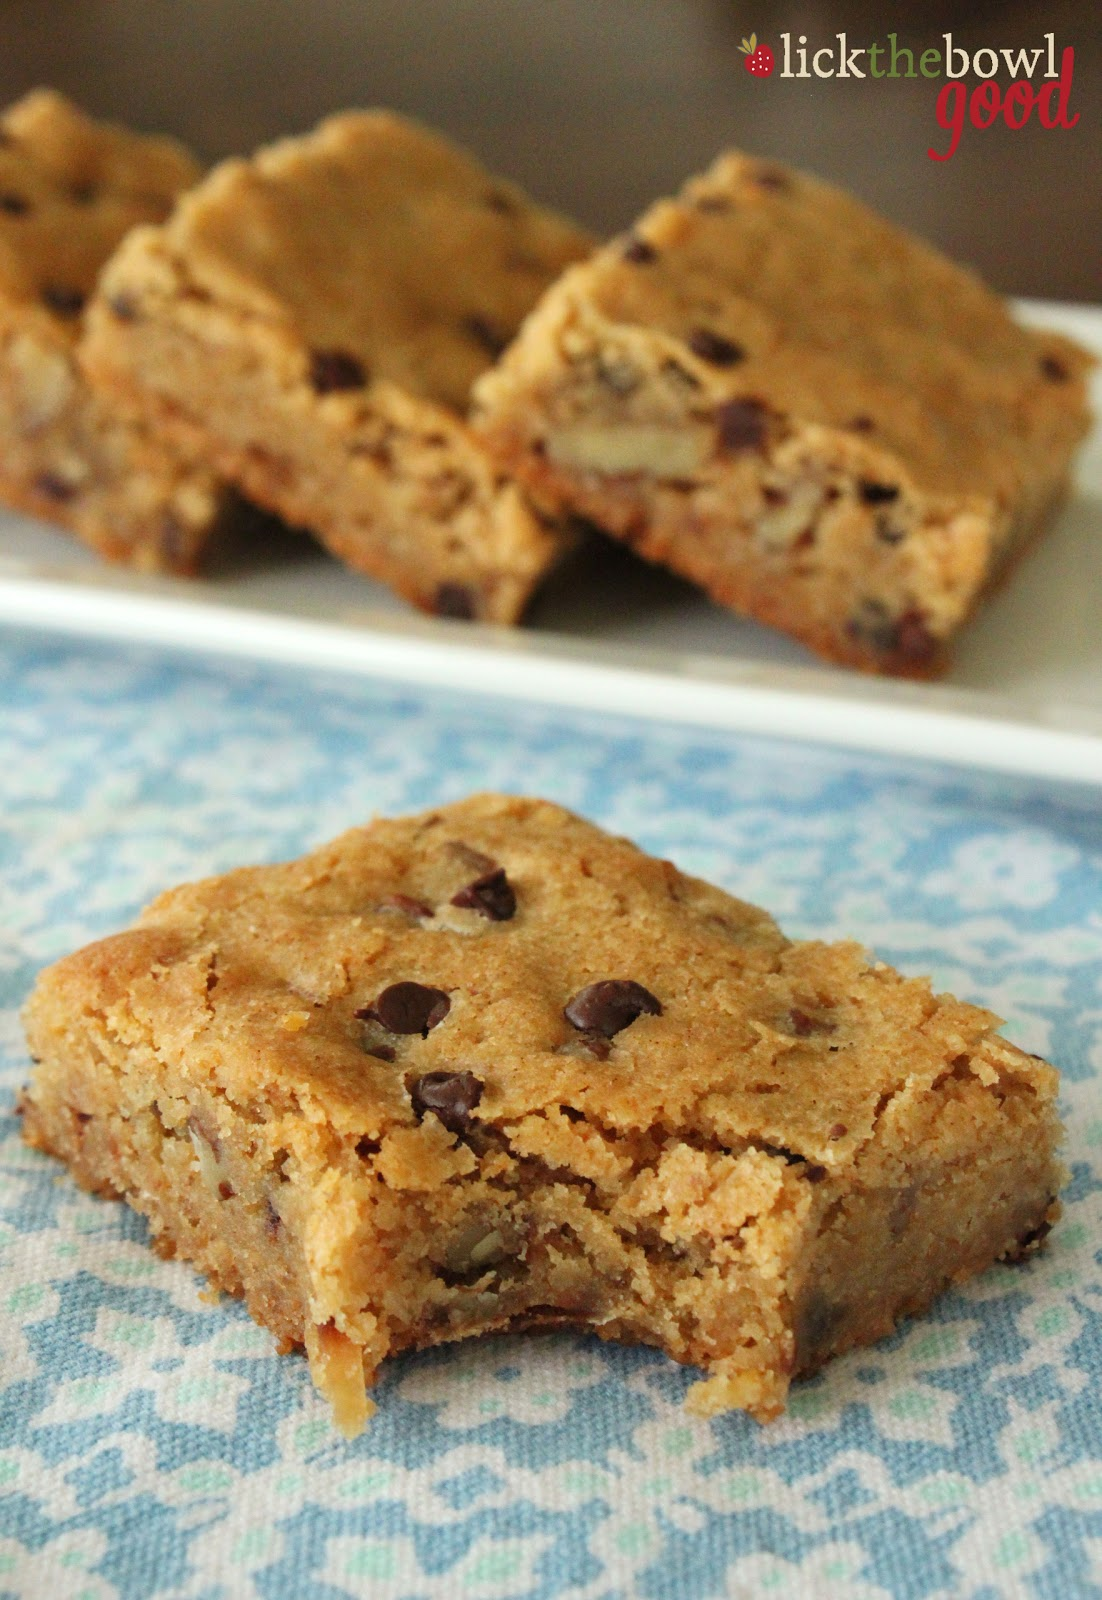 Lick The Bowl Good: Blondies, Bars, and A Cookbook Giveaway!